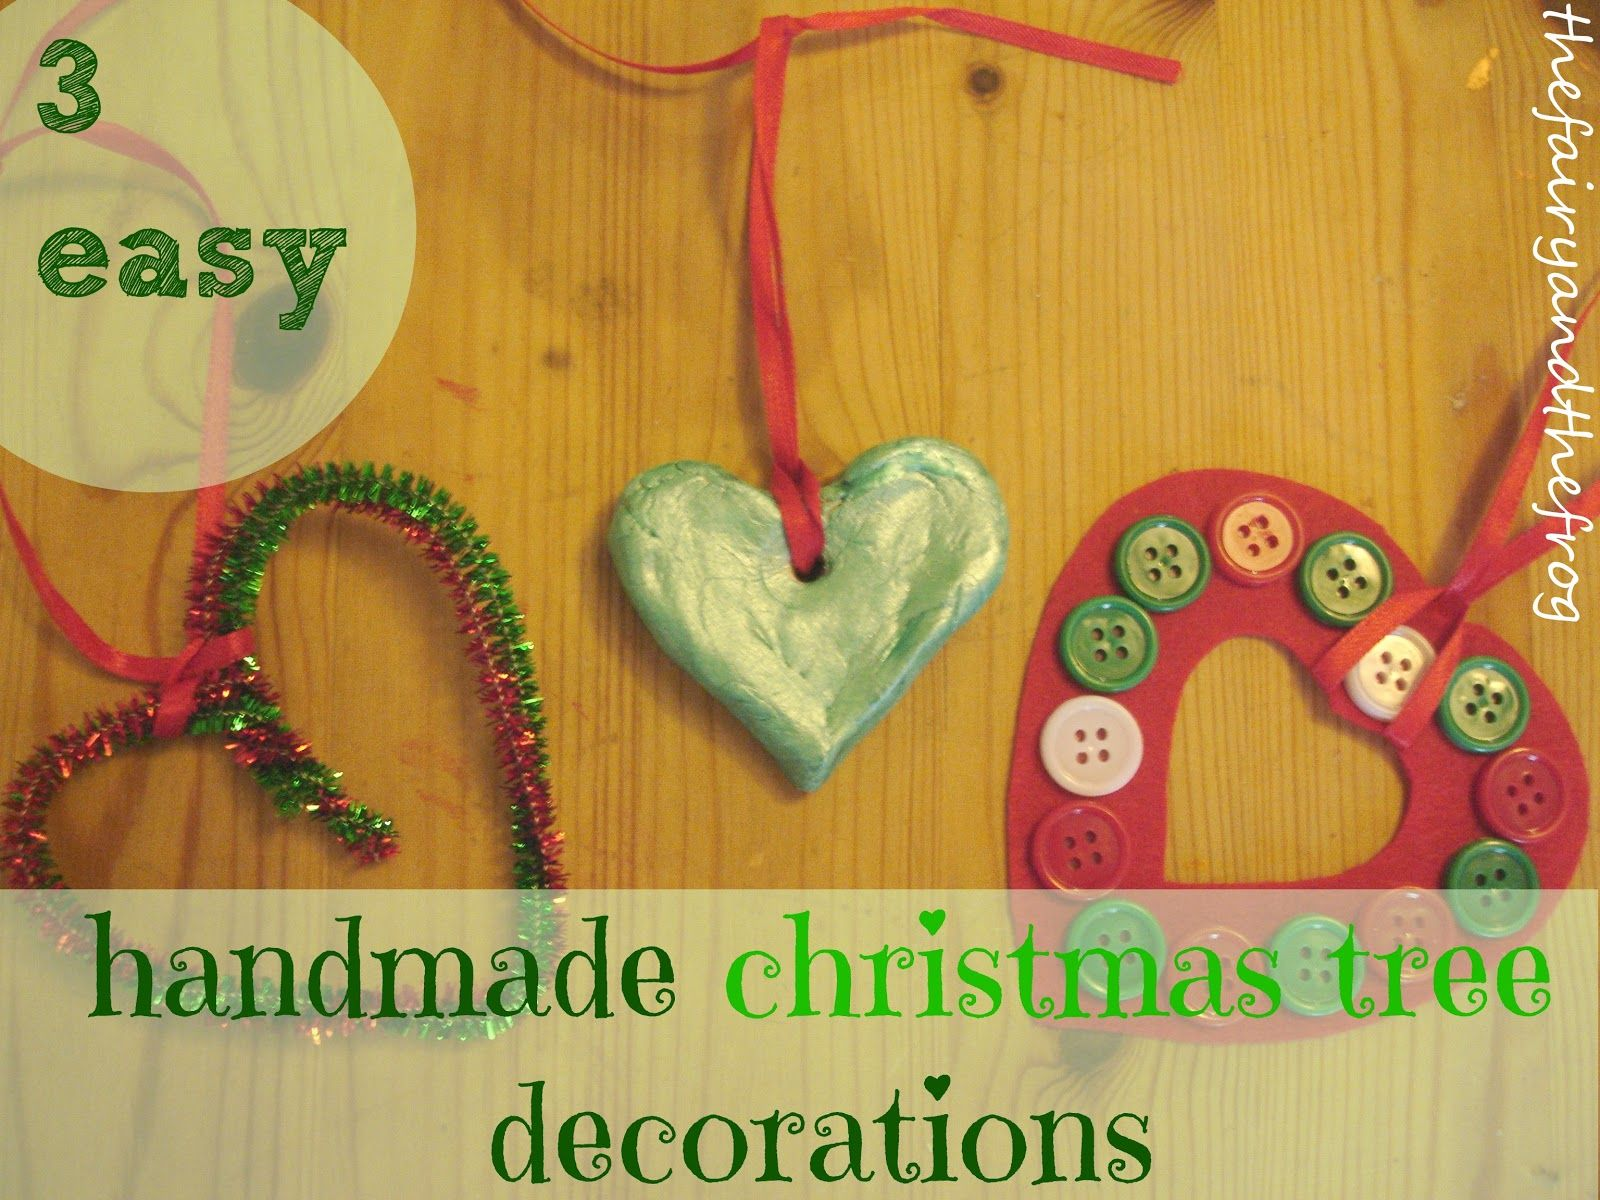 The Fairy And The Frog: How To Make 3 Easy Handmade